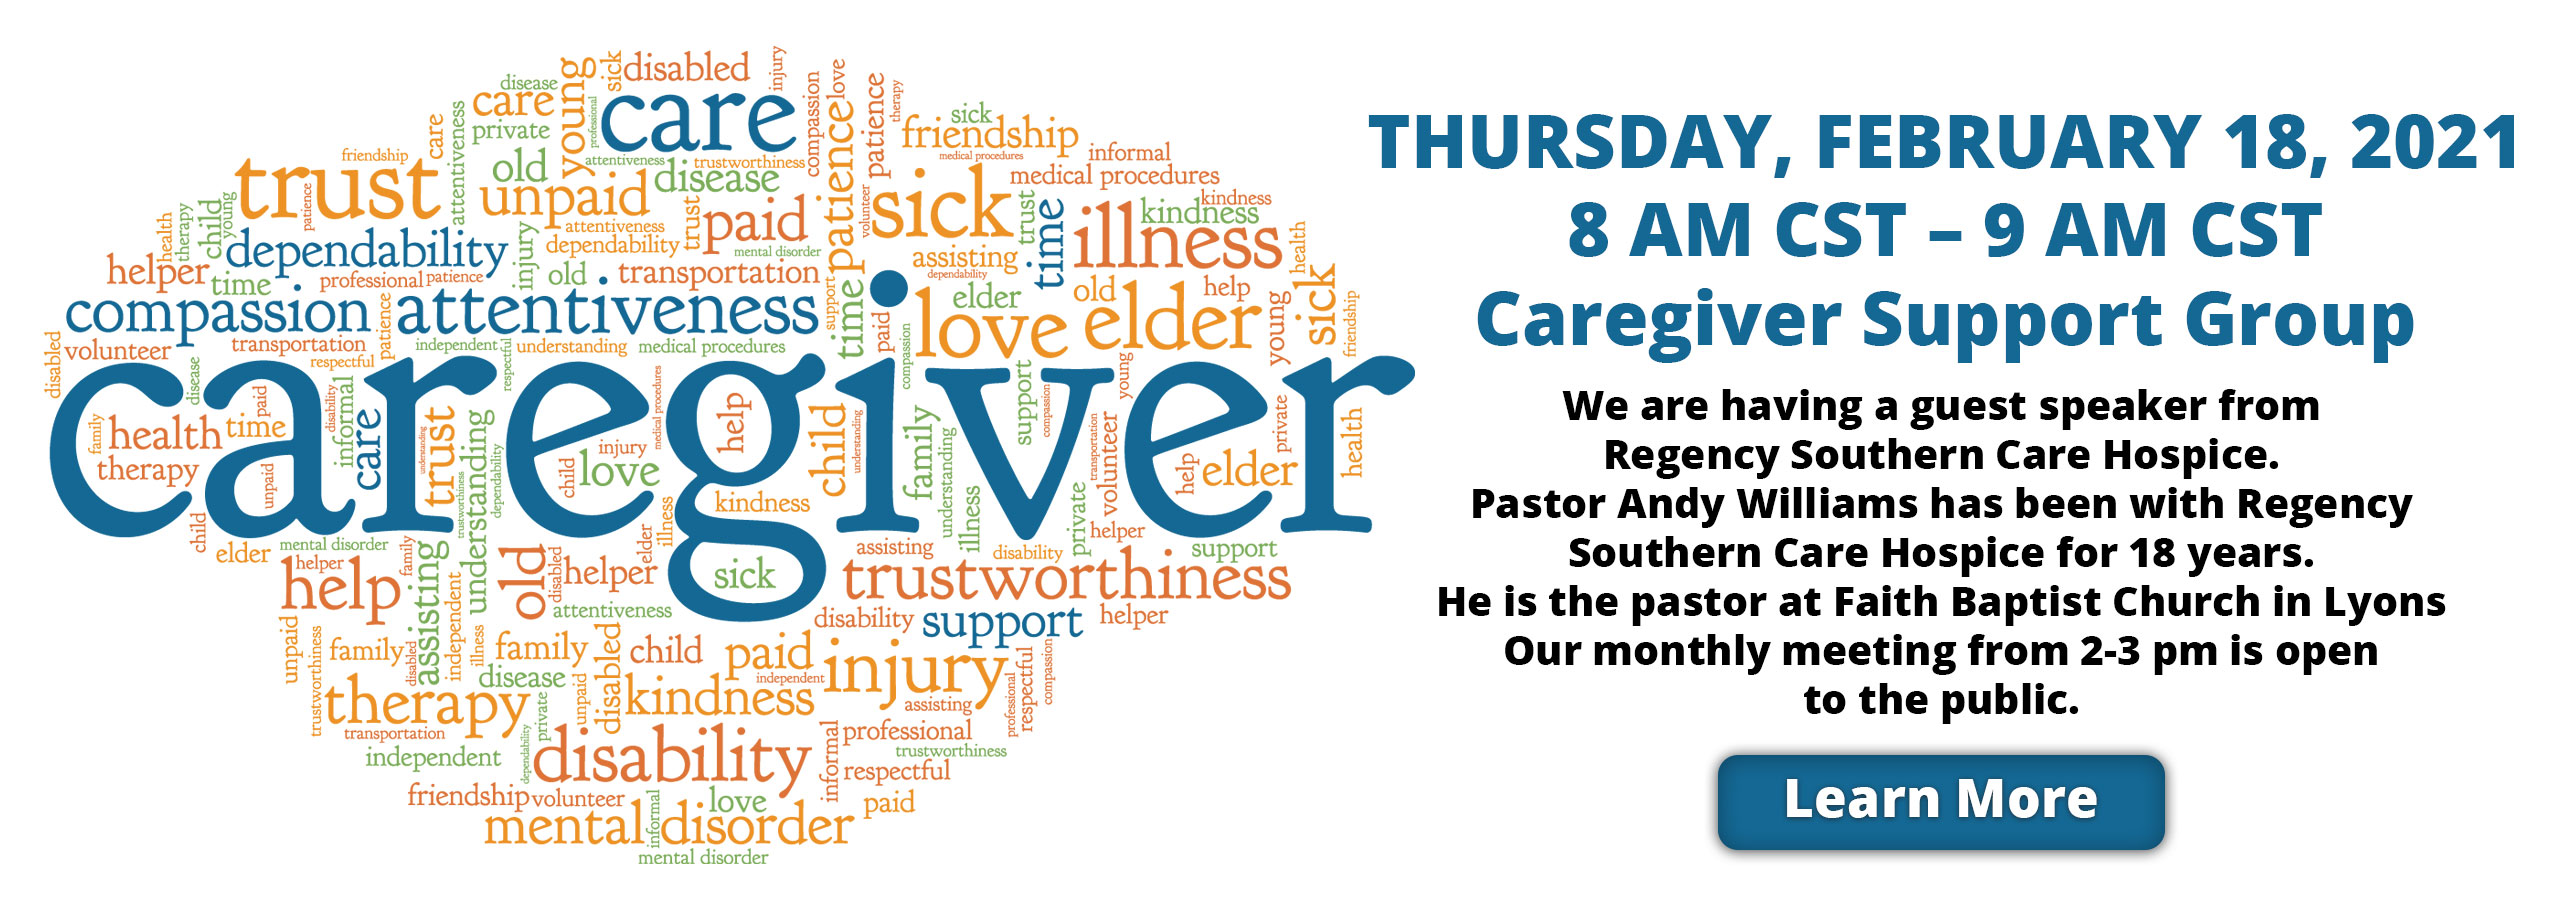 Thursday February 18, 2021 A am CST- 9 am CST Caregiver support Group  We are having a guest speaker from Regency Southern Care Hospice. Pastor Andy Williams has been with Regency Southern Care Hospice for 18 years. He is the pastor at Faith Baptist Church in Lyons our monthly meeting from 2-3 pm is open to the public. Learn more